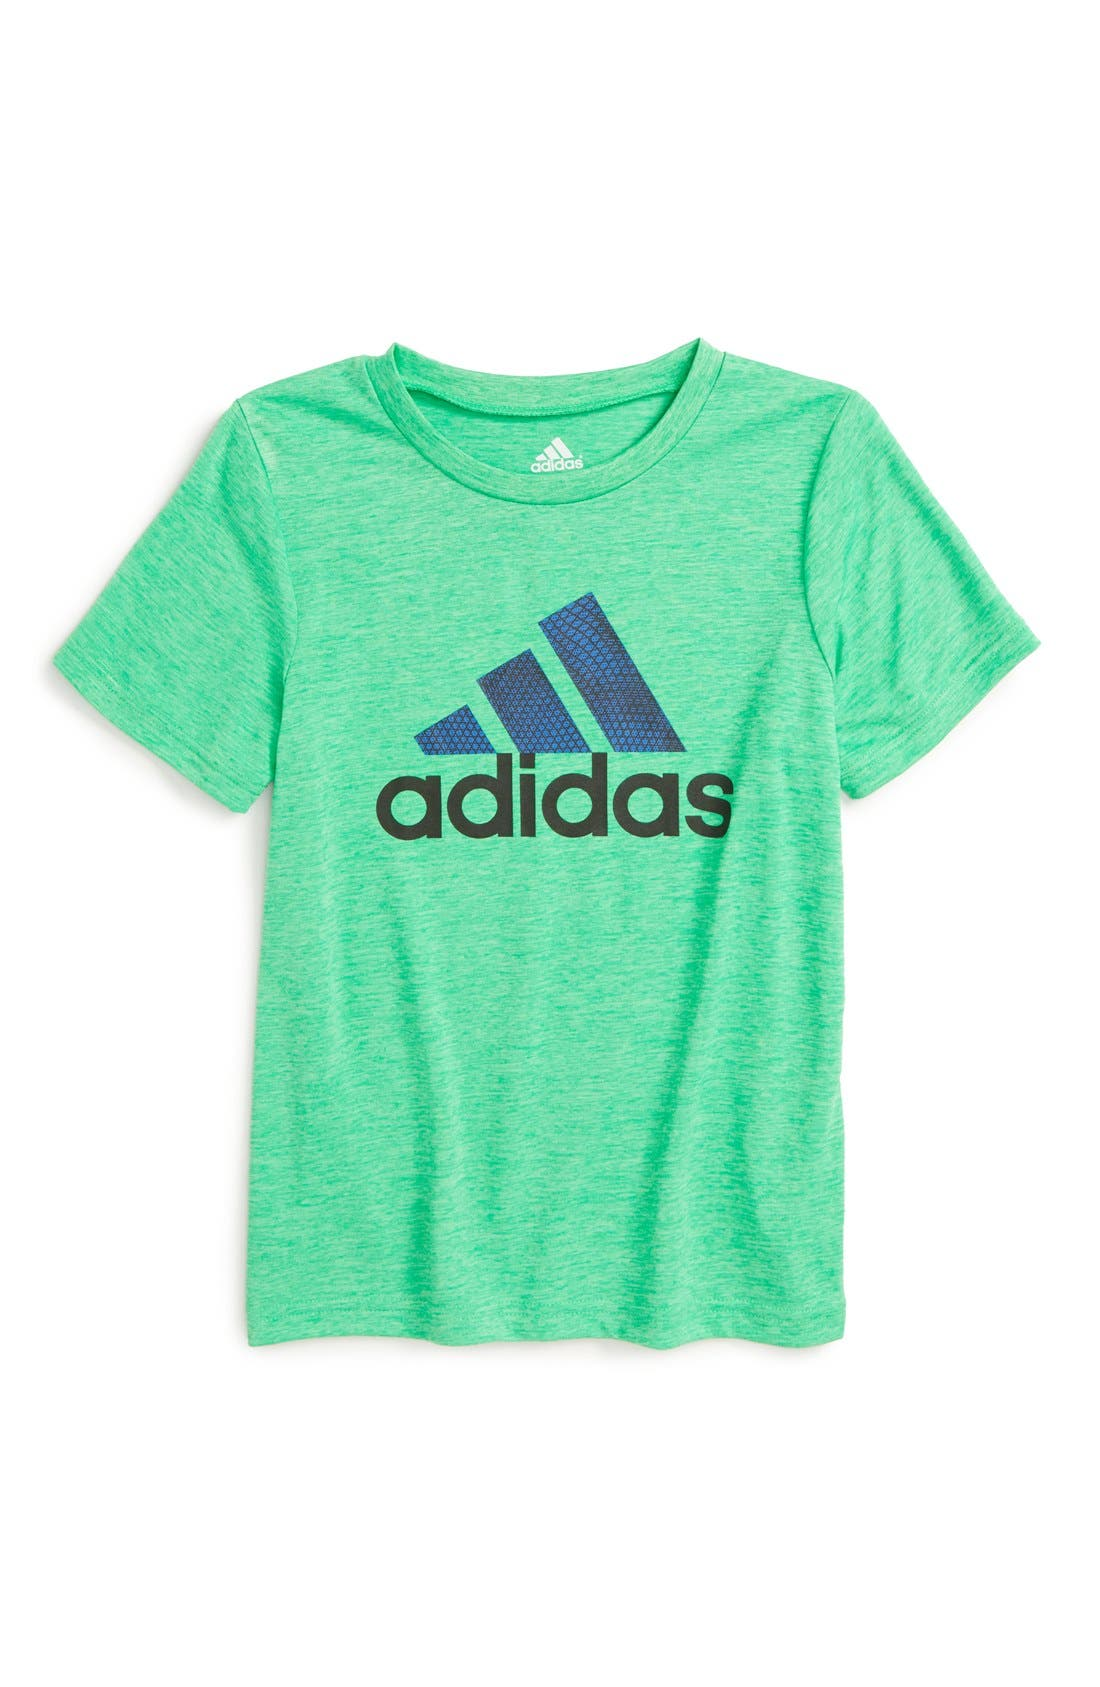 Alternate Image 1 Selected - adidas 'Game On' CLIMALITE® T-Shirt (Toddler Boys & Little Boys)